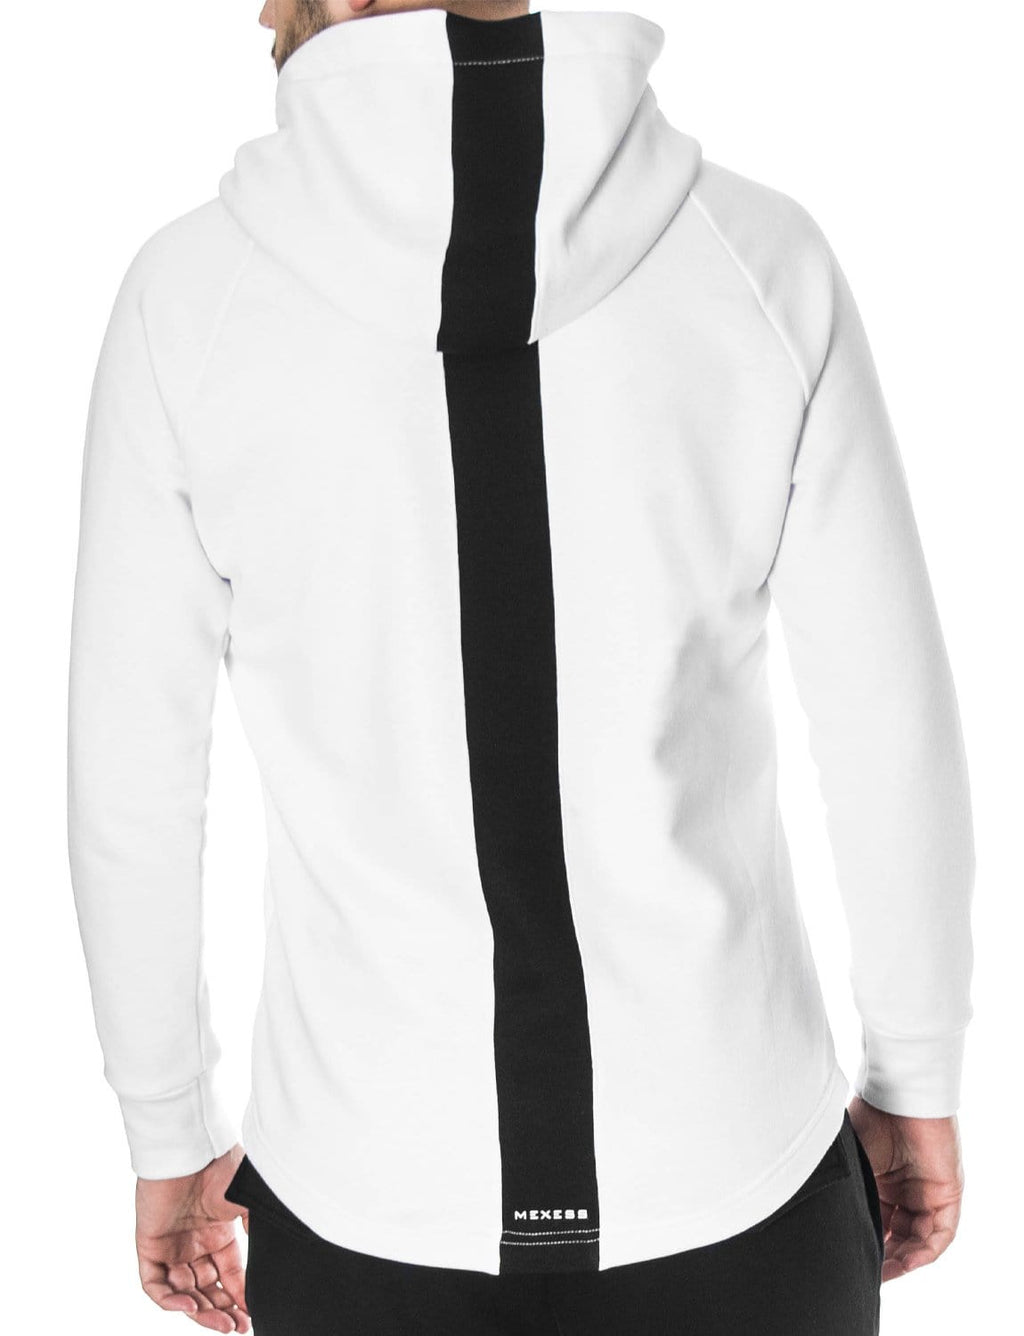 hoodies for men